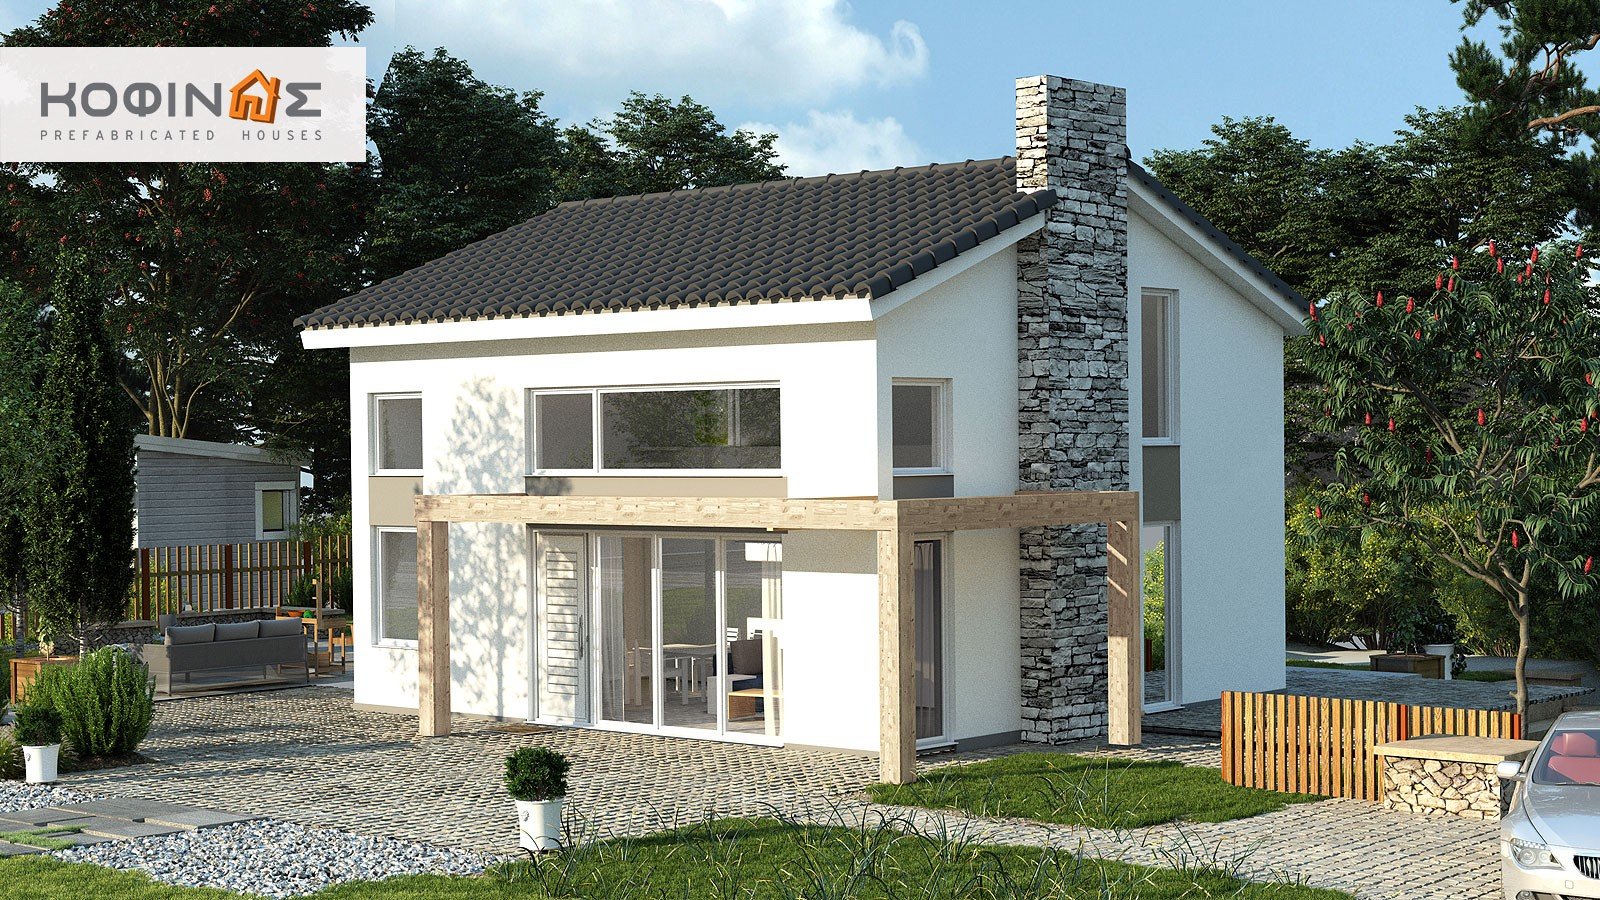 Single story house, KIS2-100 (100,37m²) – Price: 88.300€